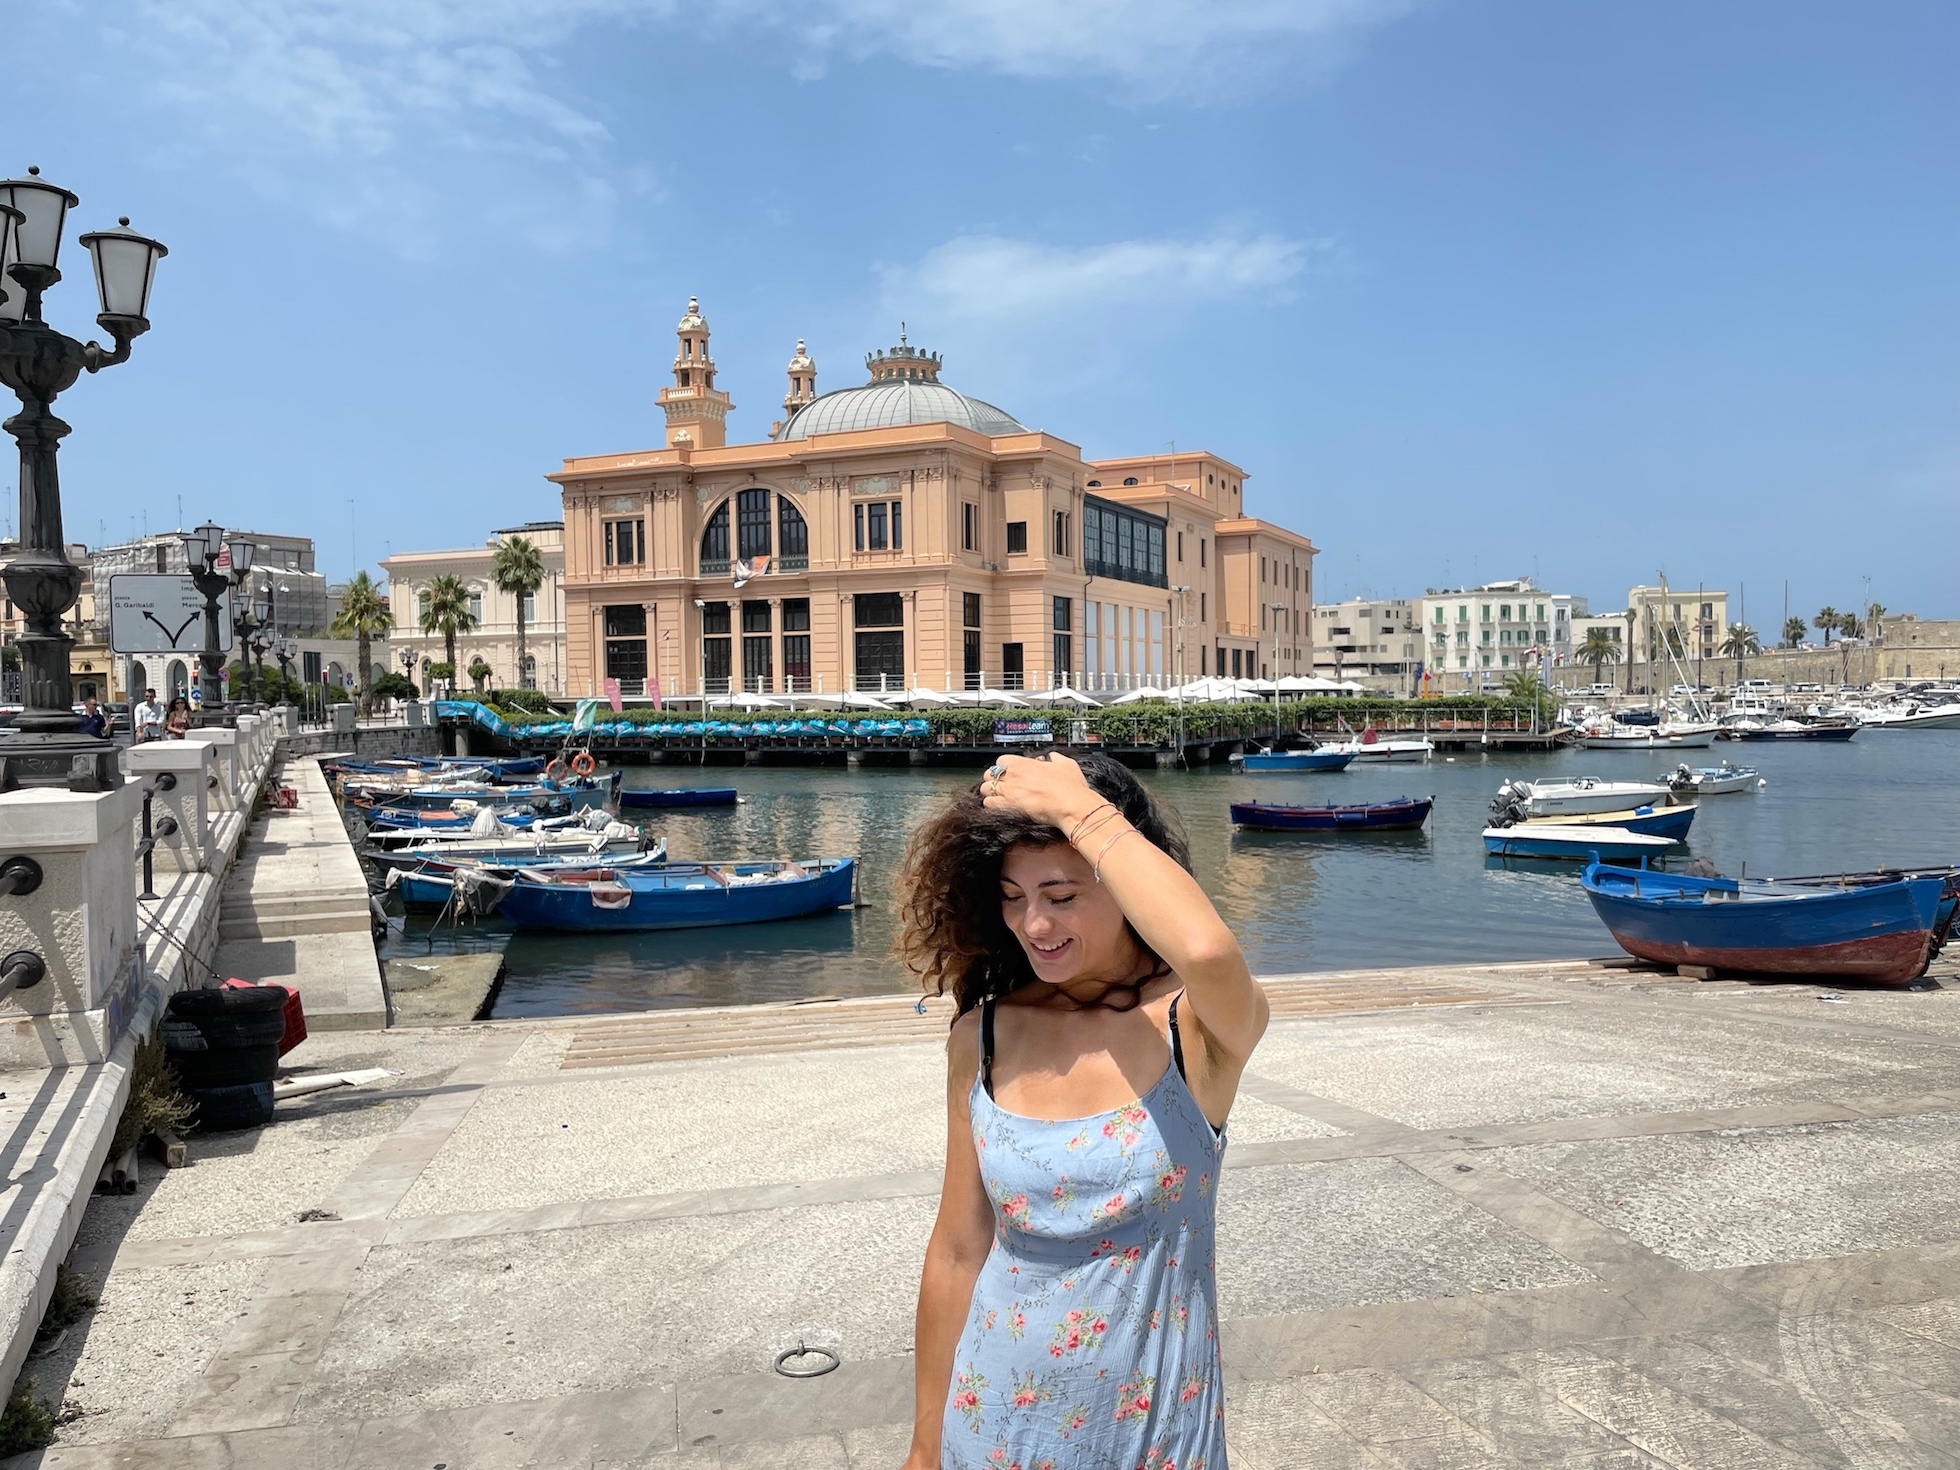 What to do in Bari, Puglia (in one day or in a week end getaway)